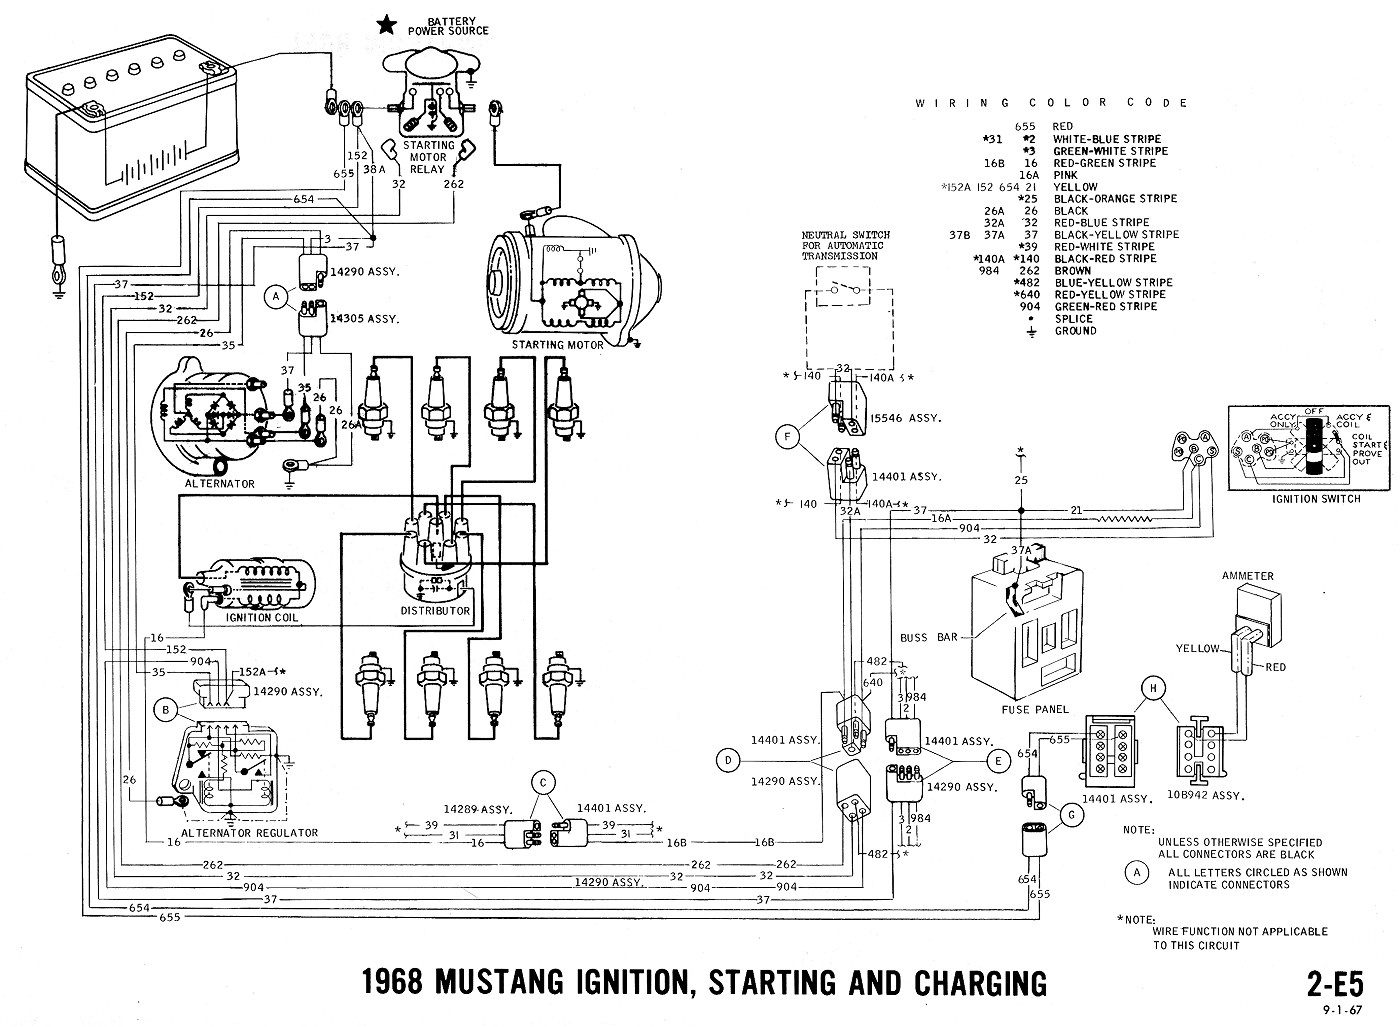 1984 Chevy Truck Fuse Box Diagram | Wiring Liry on 1985 mustang alternator wiring diagram, 1968 mustang alternator wiring diagram, 1969 mustang alternator wiring diagram, 1980 mustang alternator wiring diagram, 1966 mustang alternator wiring diagram, 1992 mustang alternator wiring diagram, 1970 mustang alternator wiring diagram, 1967 mustang alternator wiring diagram, 1971 mustang alternator wiring diagram, 1986 mustang alternator wiring diagram, 1972 mustang alternator wiring diagram, 1973 mustang alternator wiring diagram, 1989 mustang alternator wiring diagram, 1983 mustang alternator wiring diagram, 1990 mustang alternator wiring diagram,